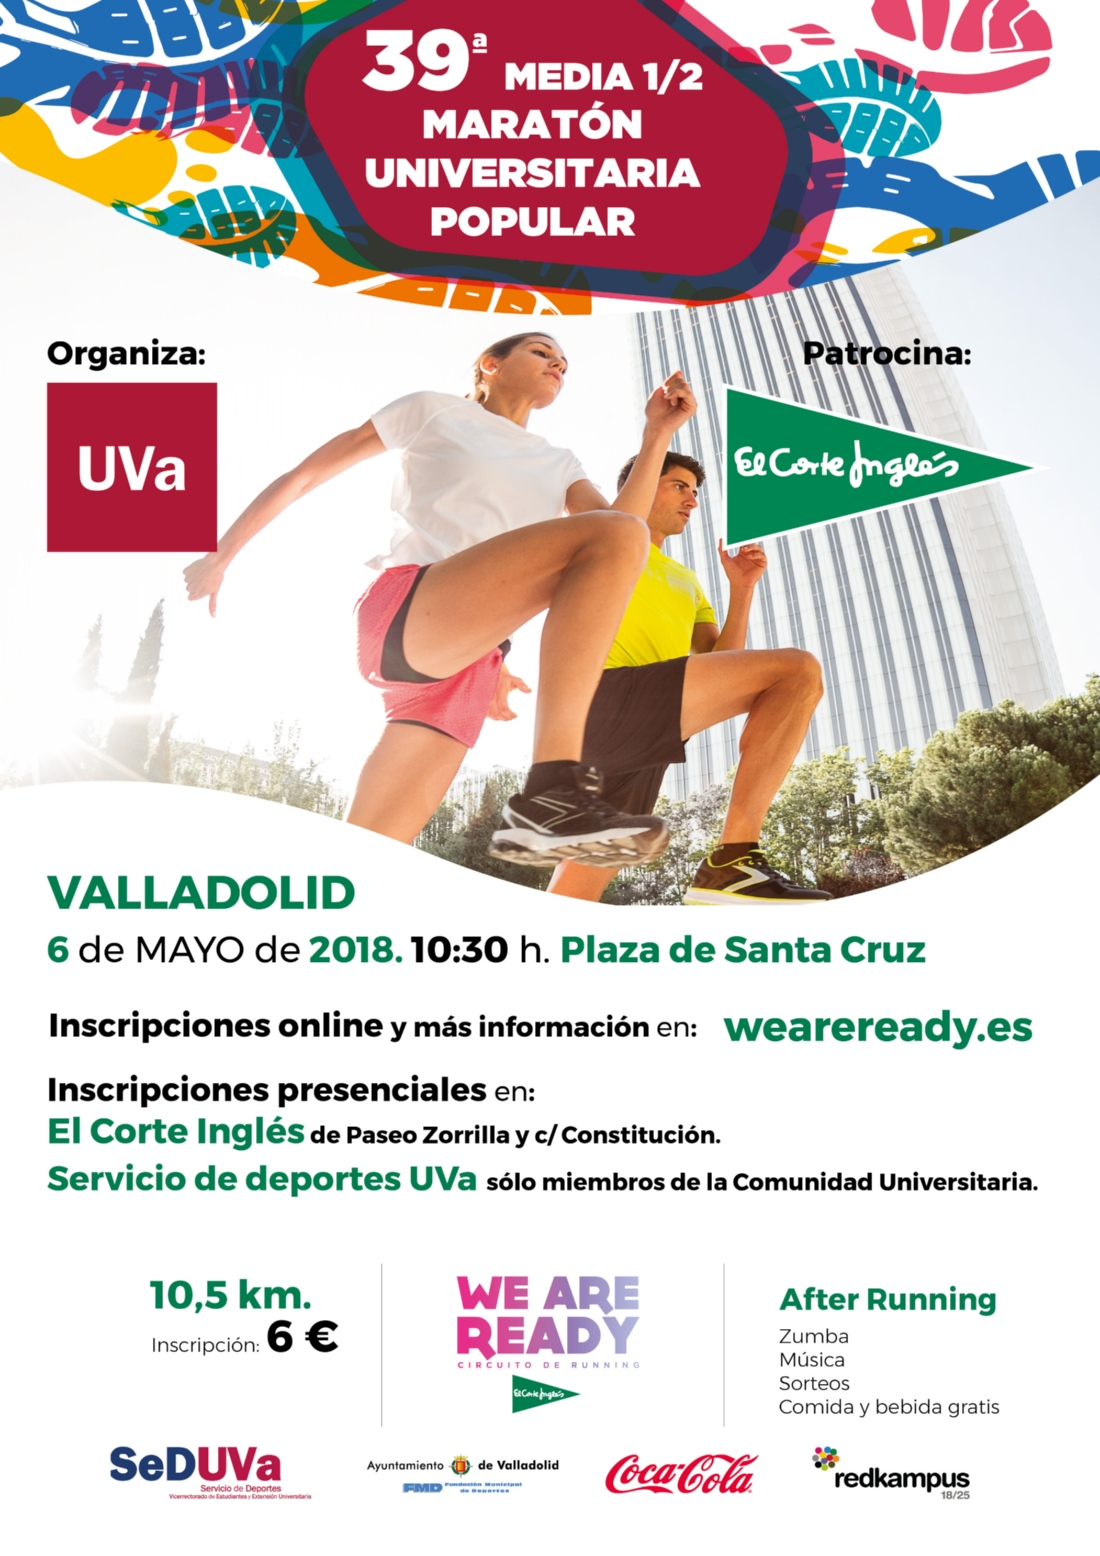 MEDIA MEDIA MARATON UNIVERSITARIA VALLADOLID